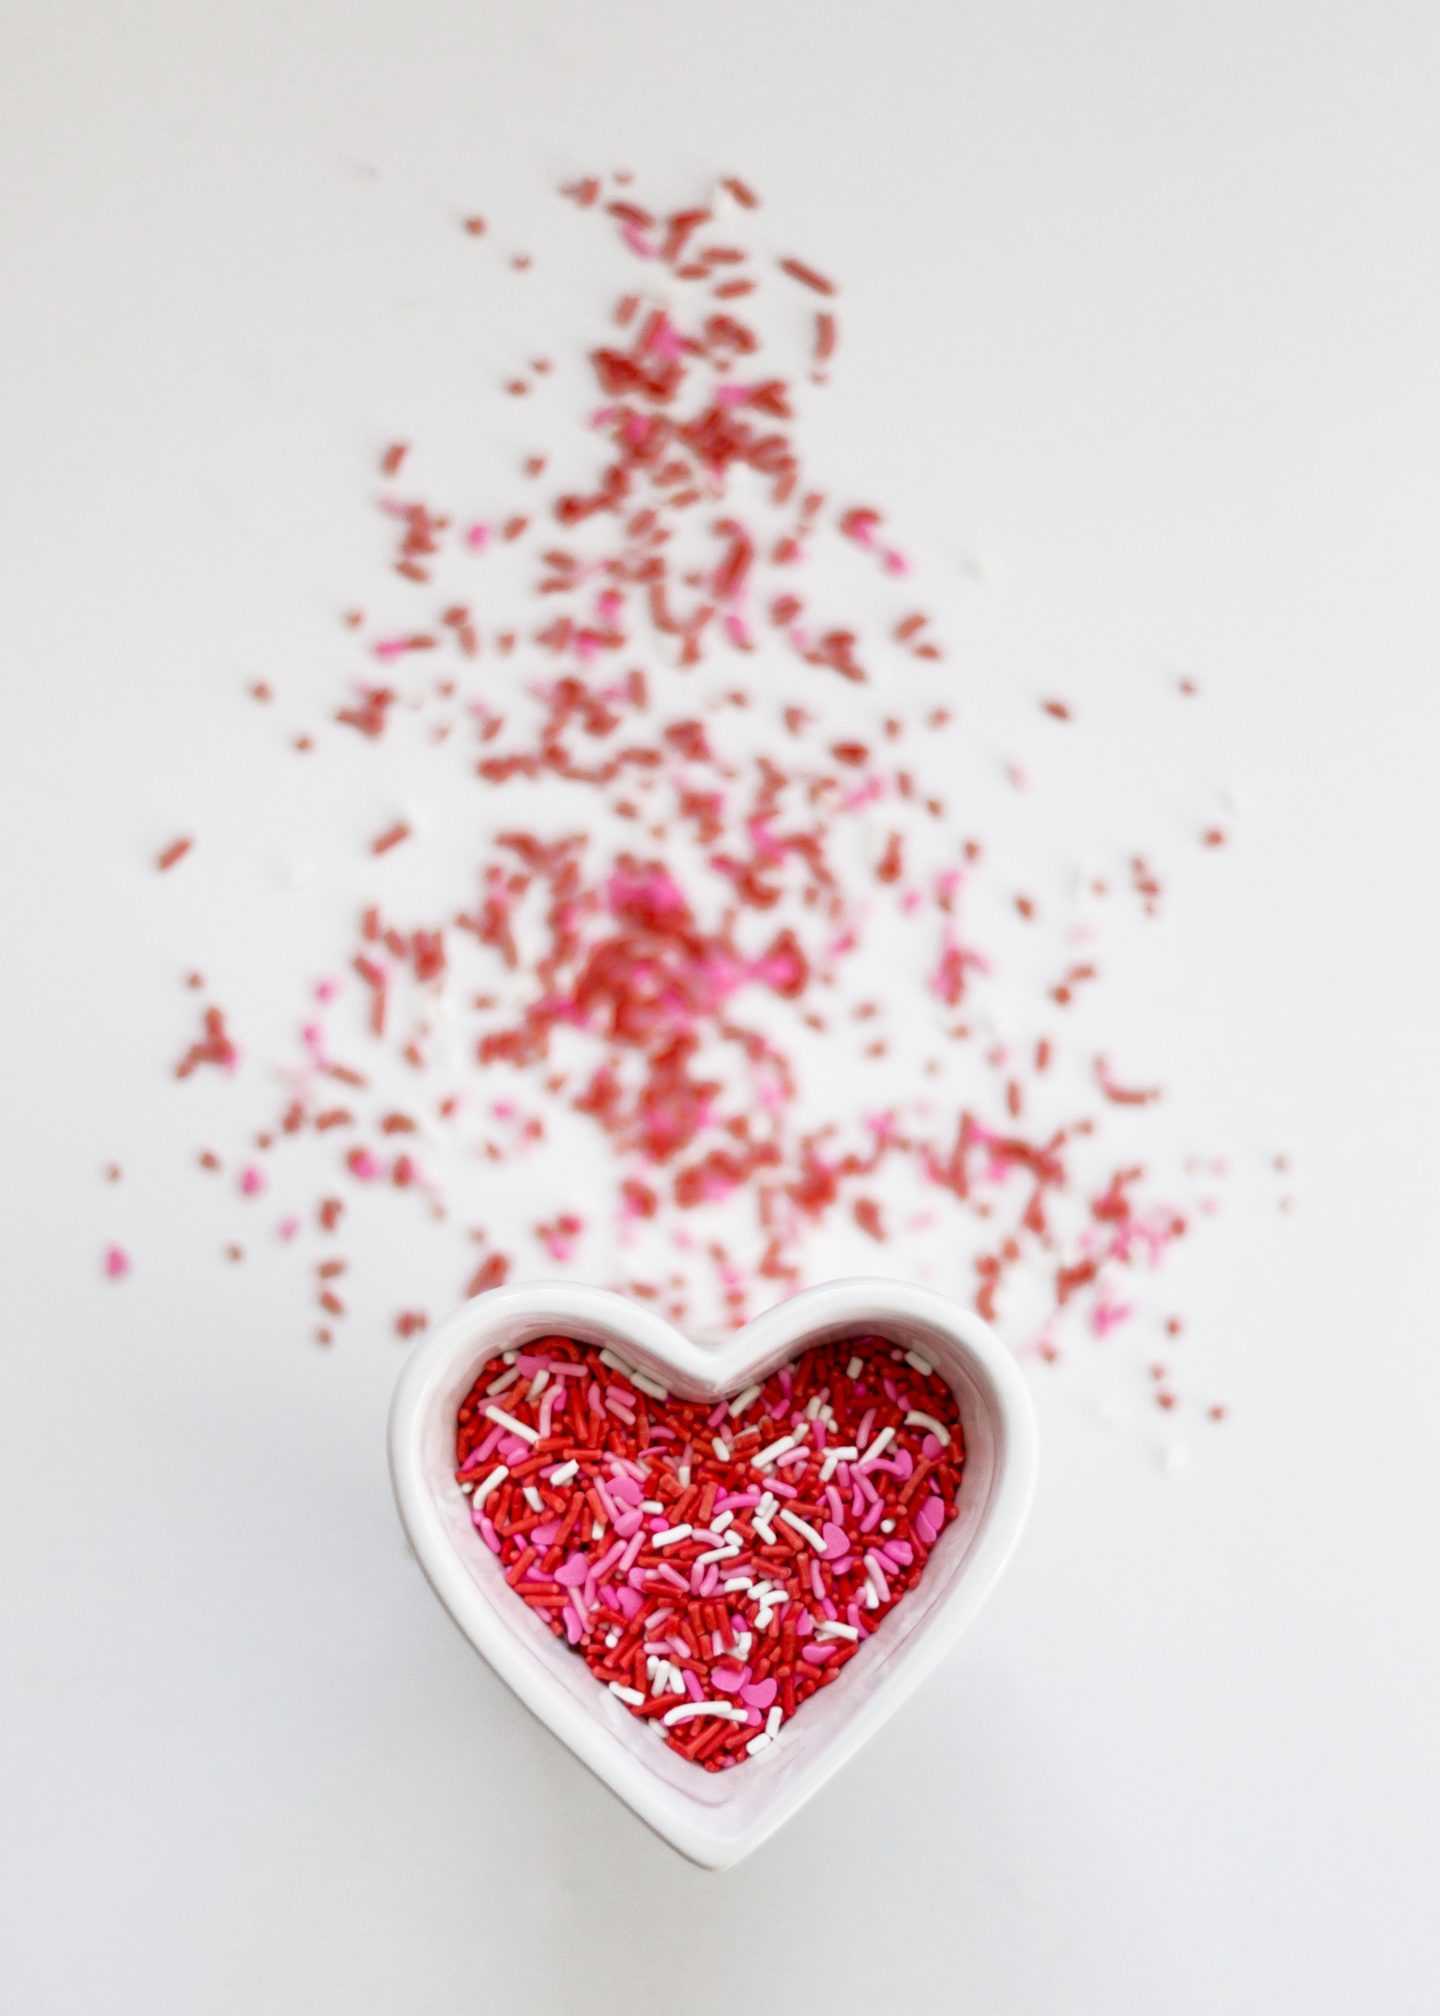 Heart shaped dish with red sprinkles for Valentine's Day